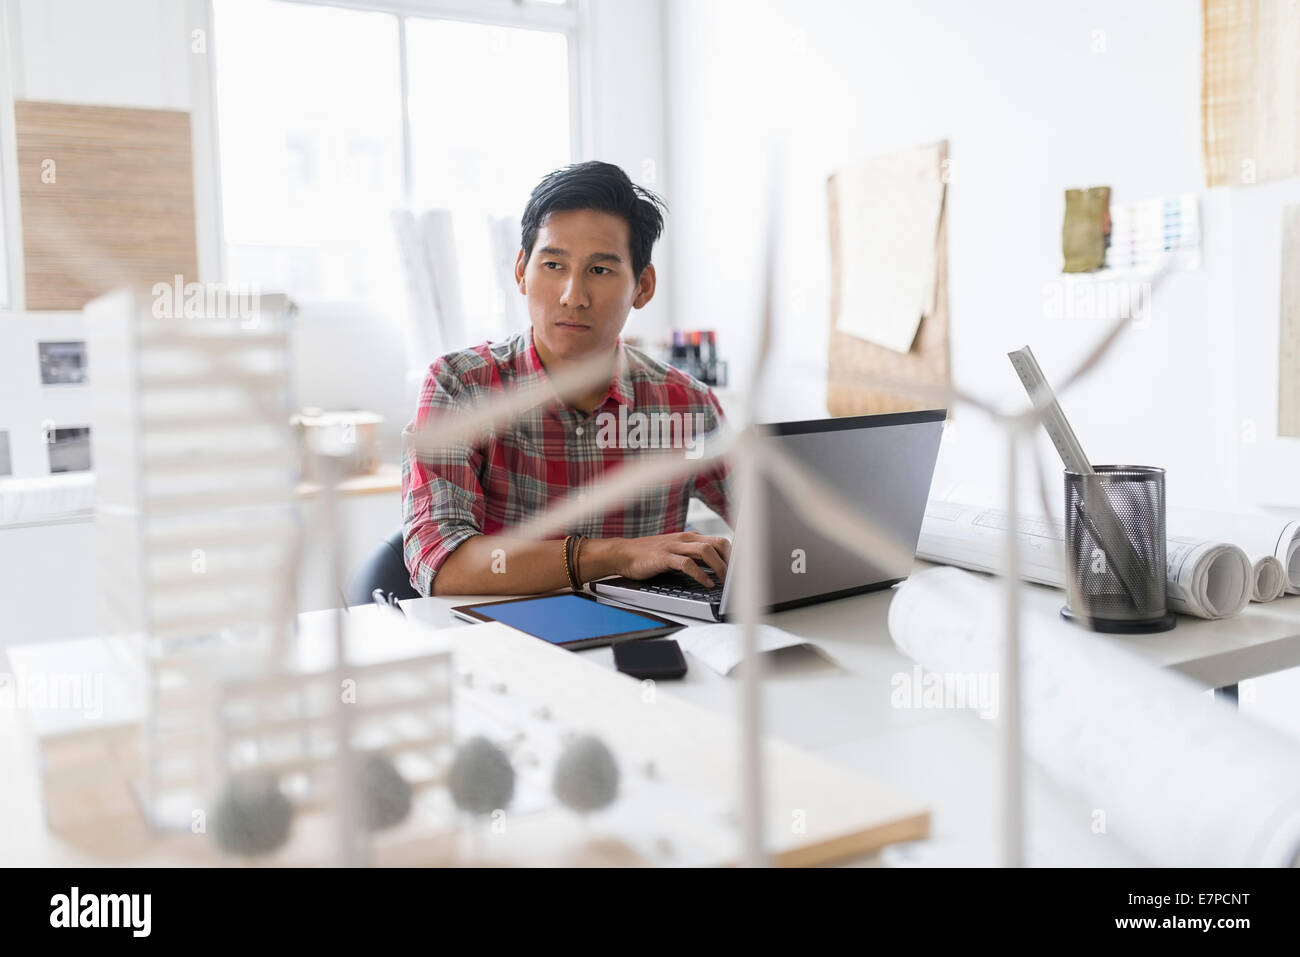 Wind turbine models on desk in front of architect - Stock Image